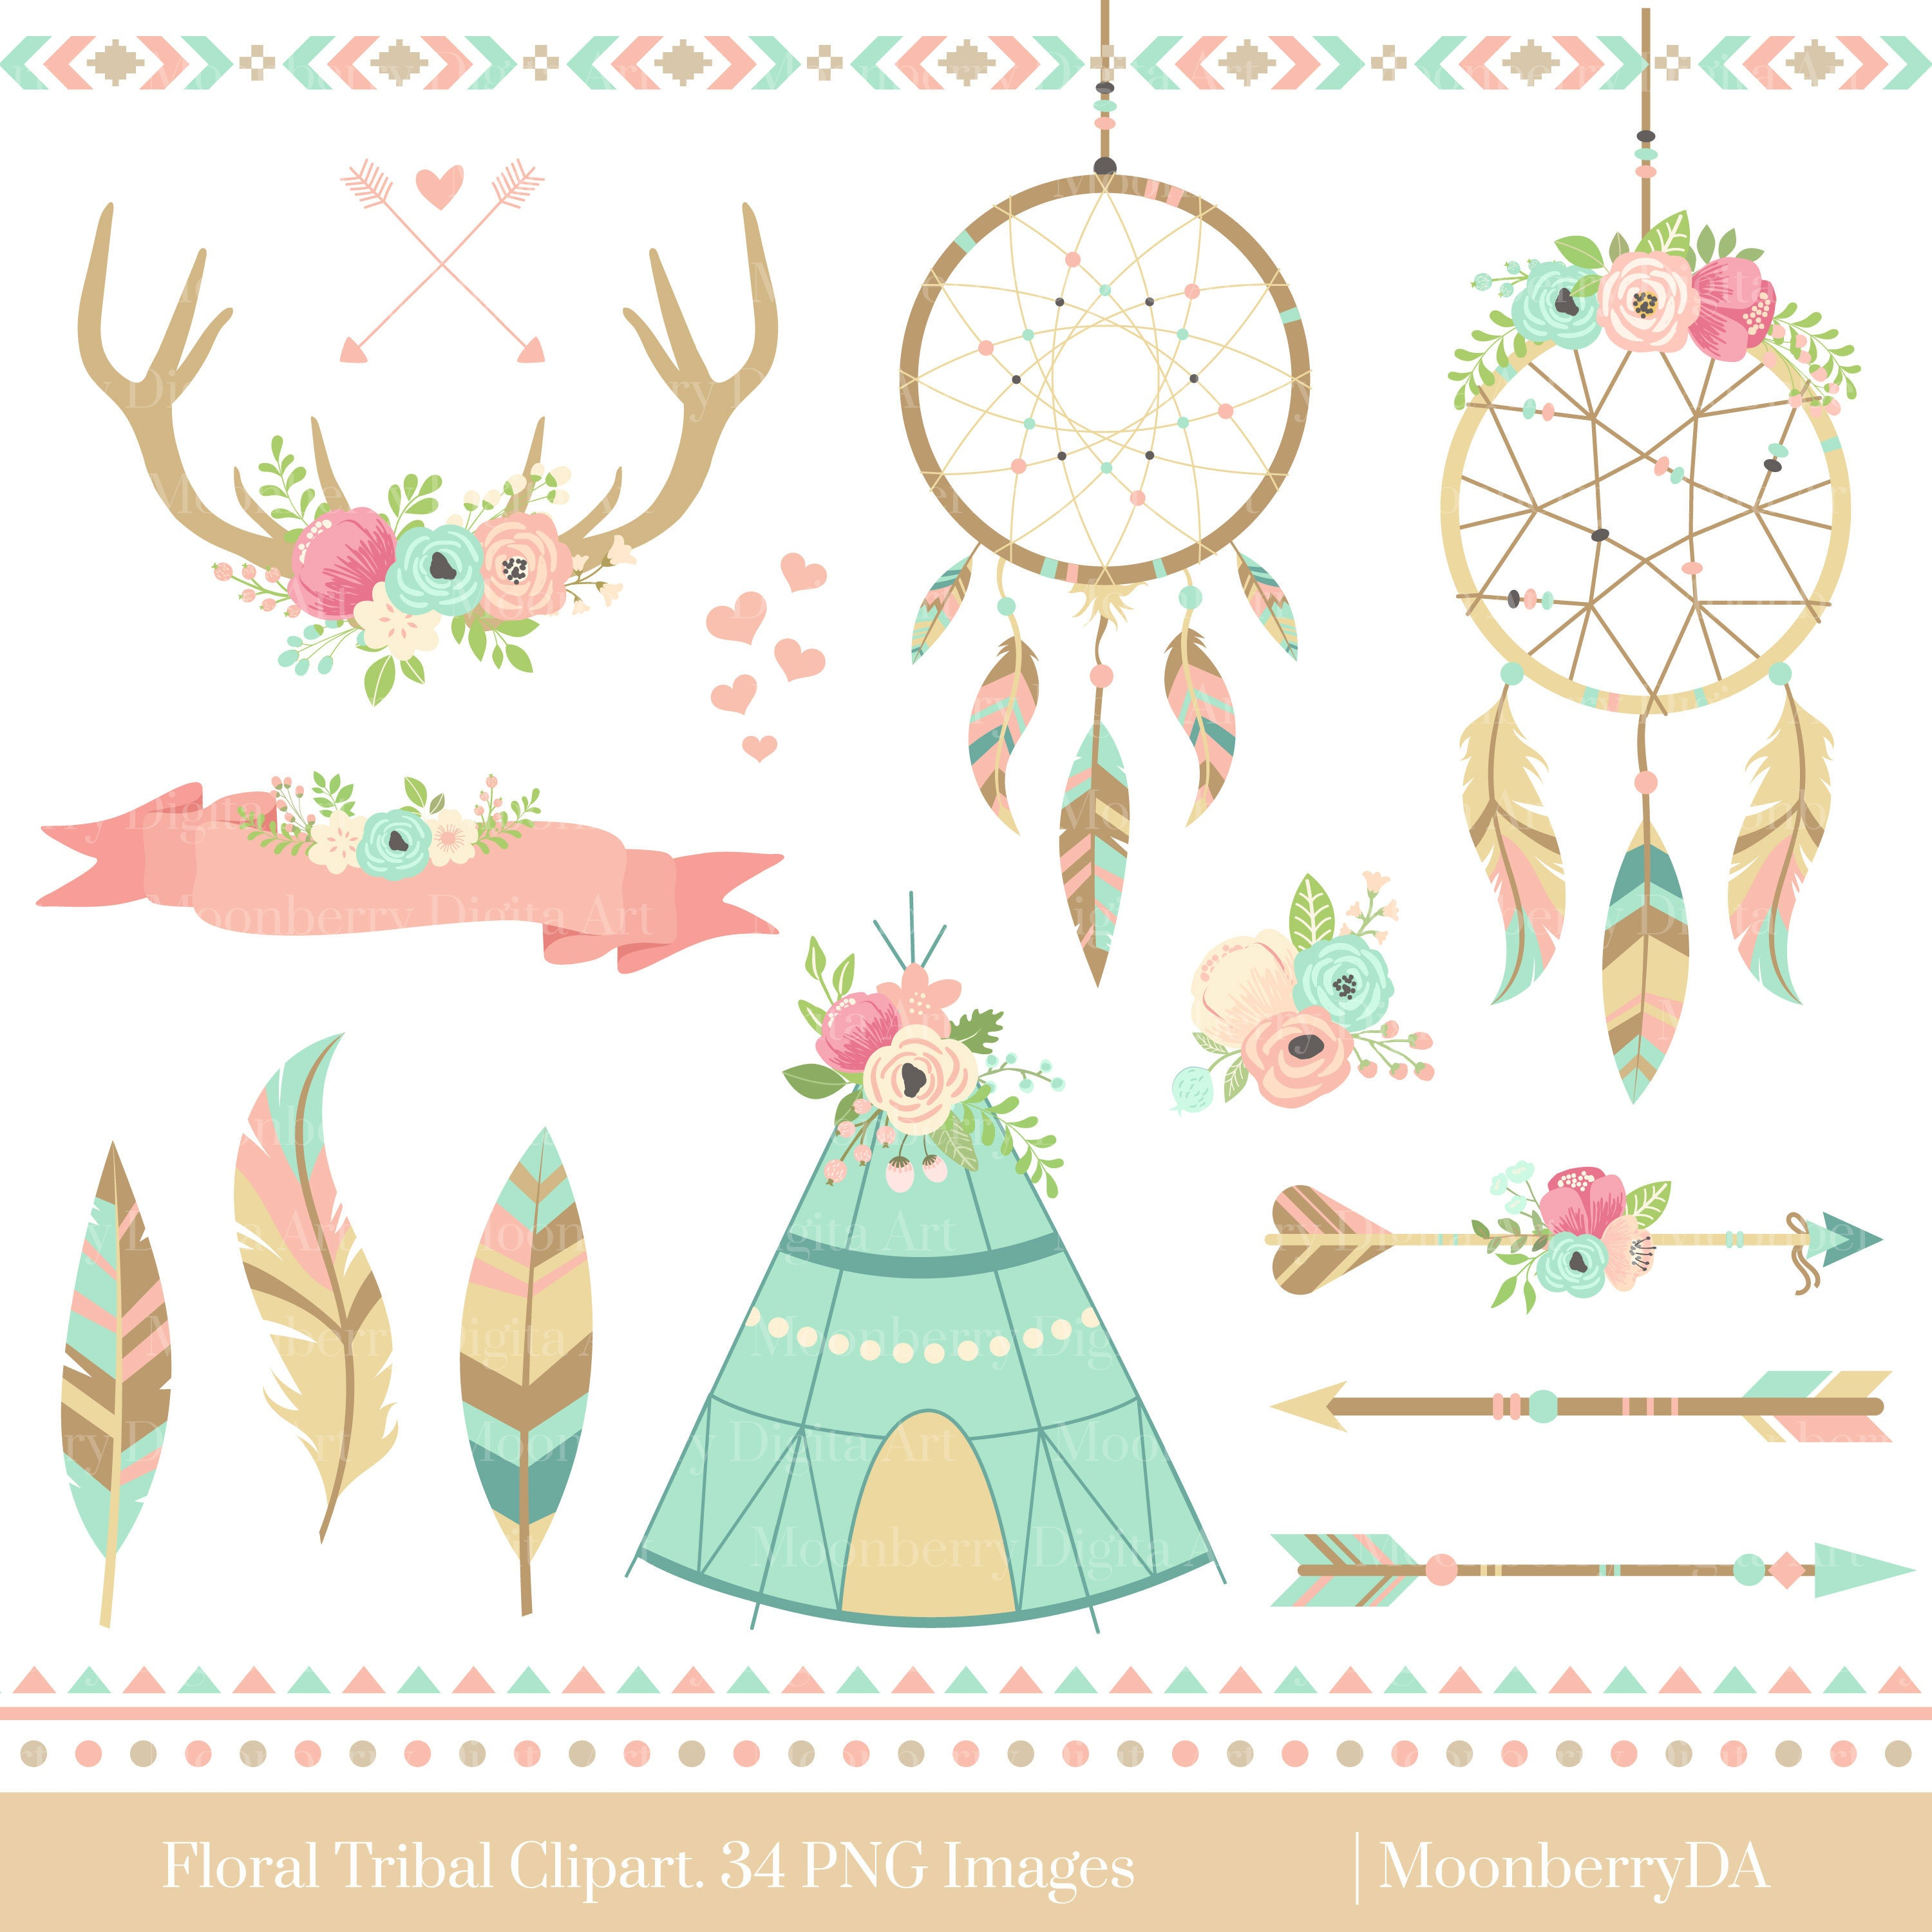 Dreamcatcher Tribal Clipart. Floral Teepee. Floral Arrows.